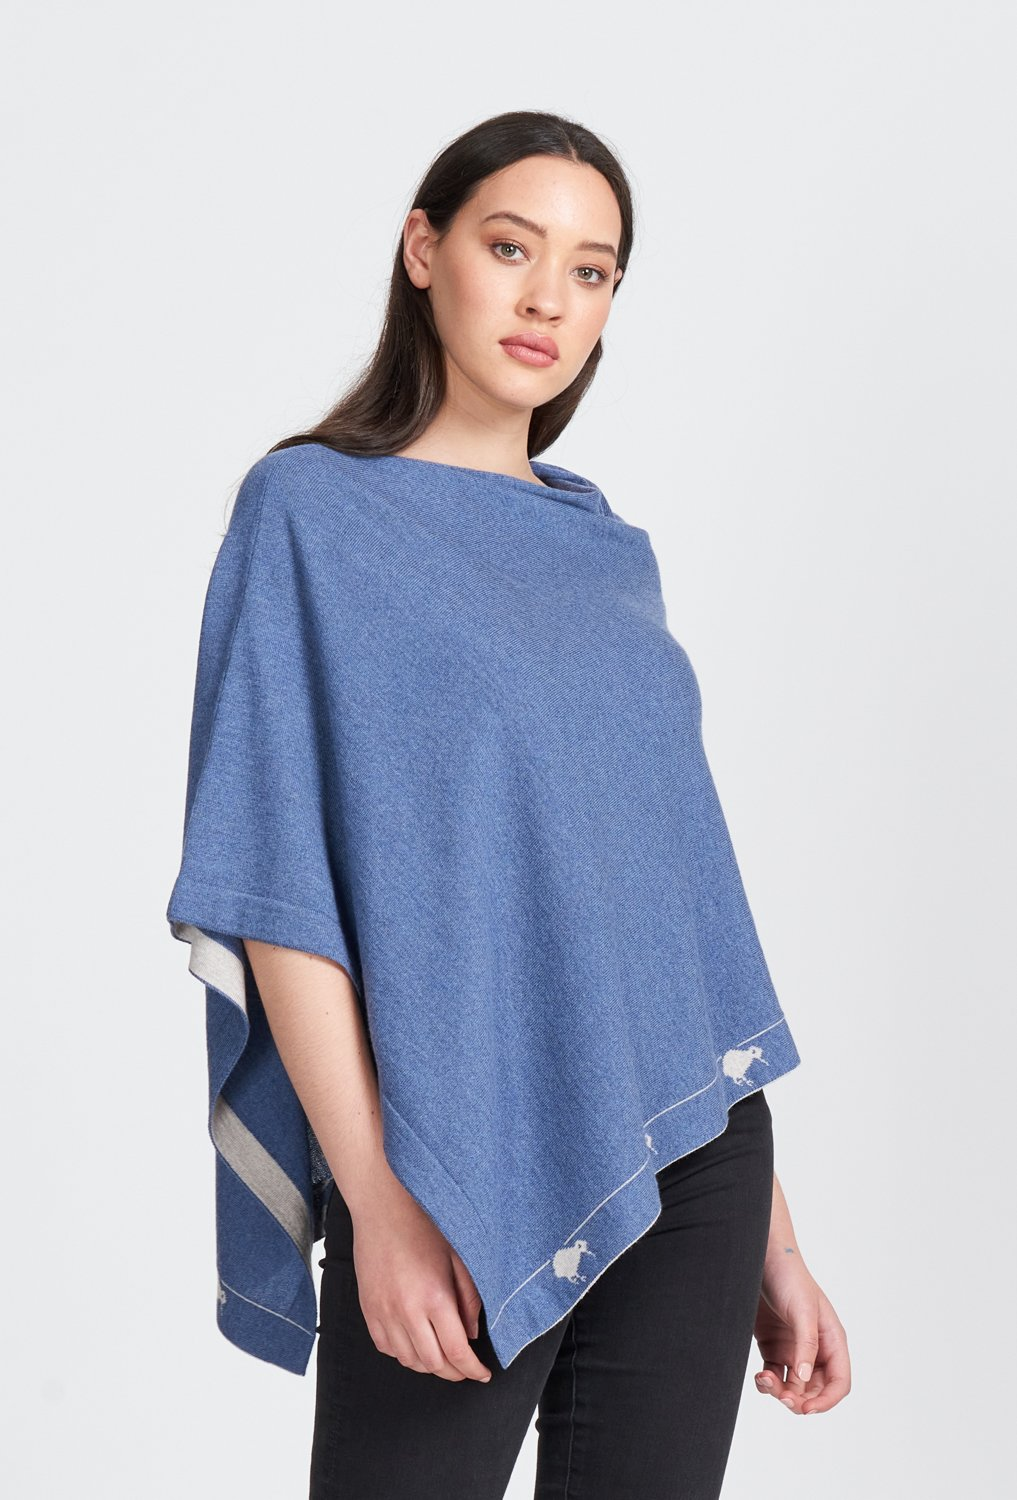 KIWI PONCHO - Woolshed Gallery